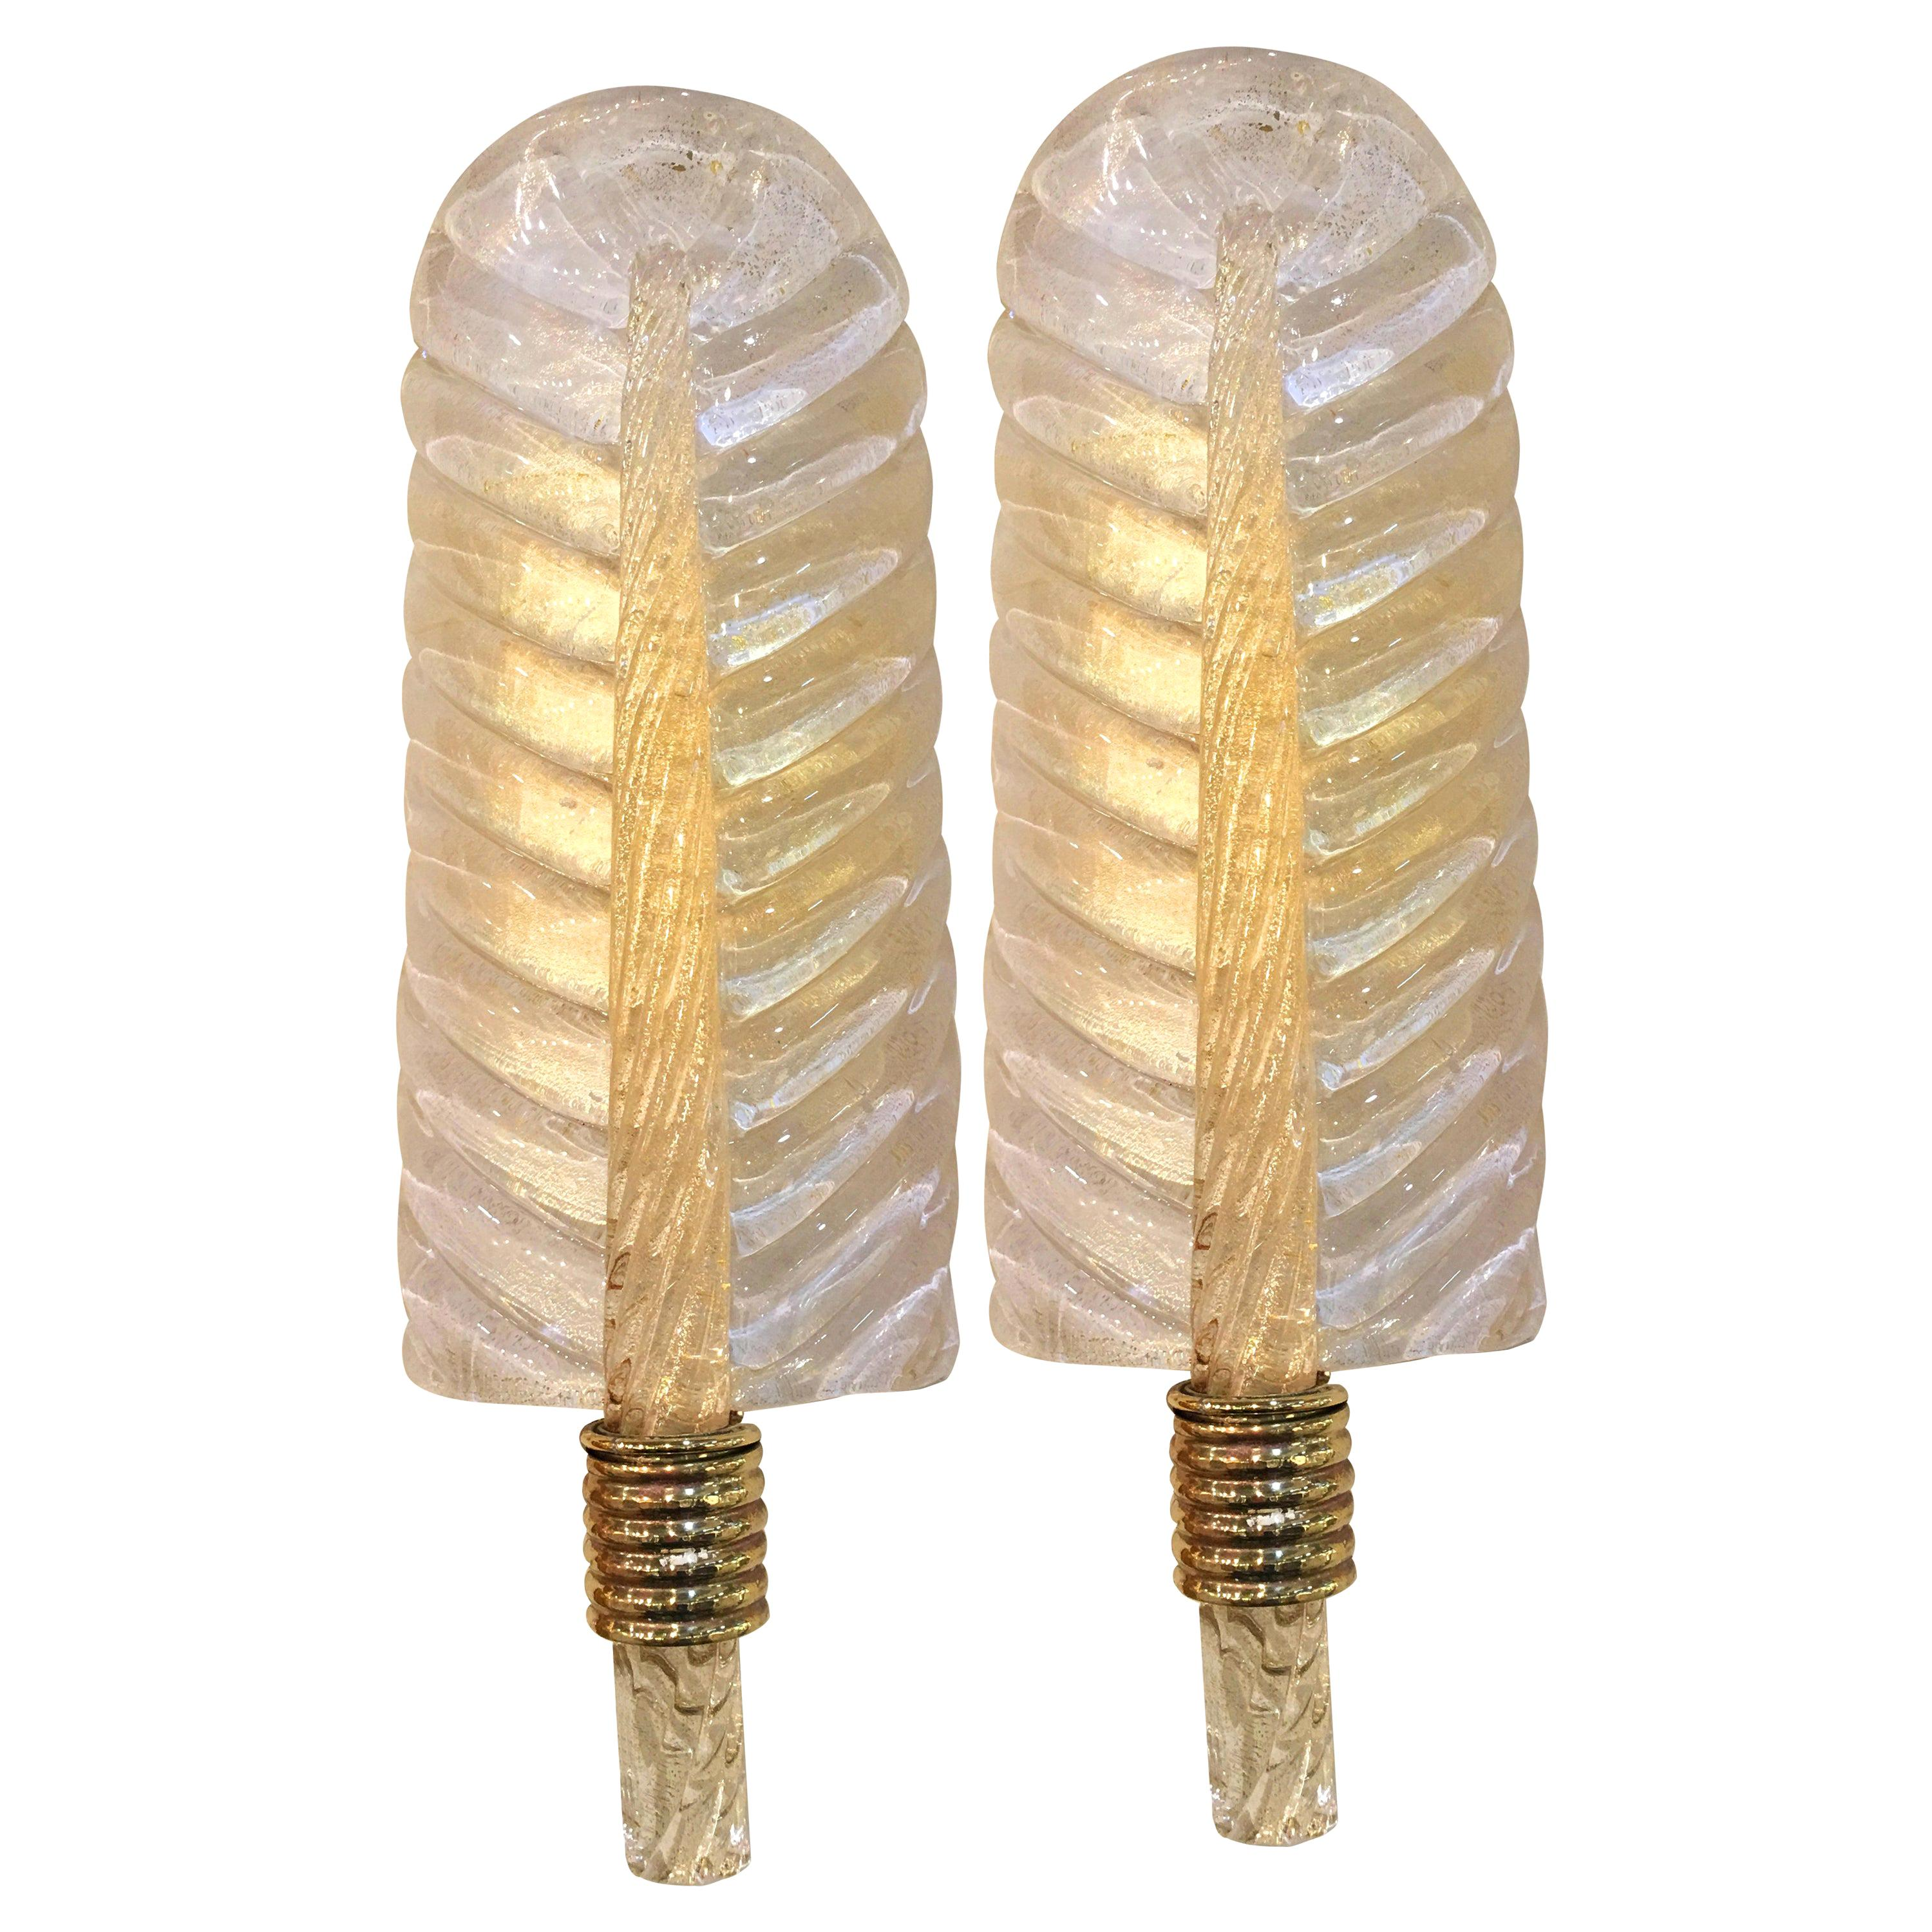 Midcentury Pair of Sconces 24-Karat Gold by Barovier & Toso, Murano, 1980s